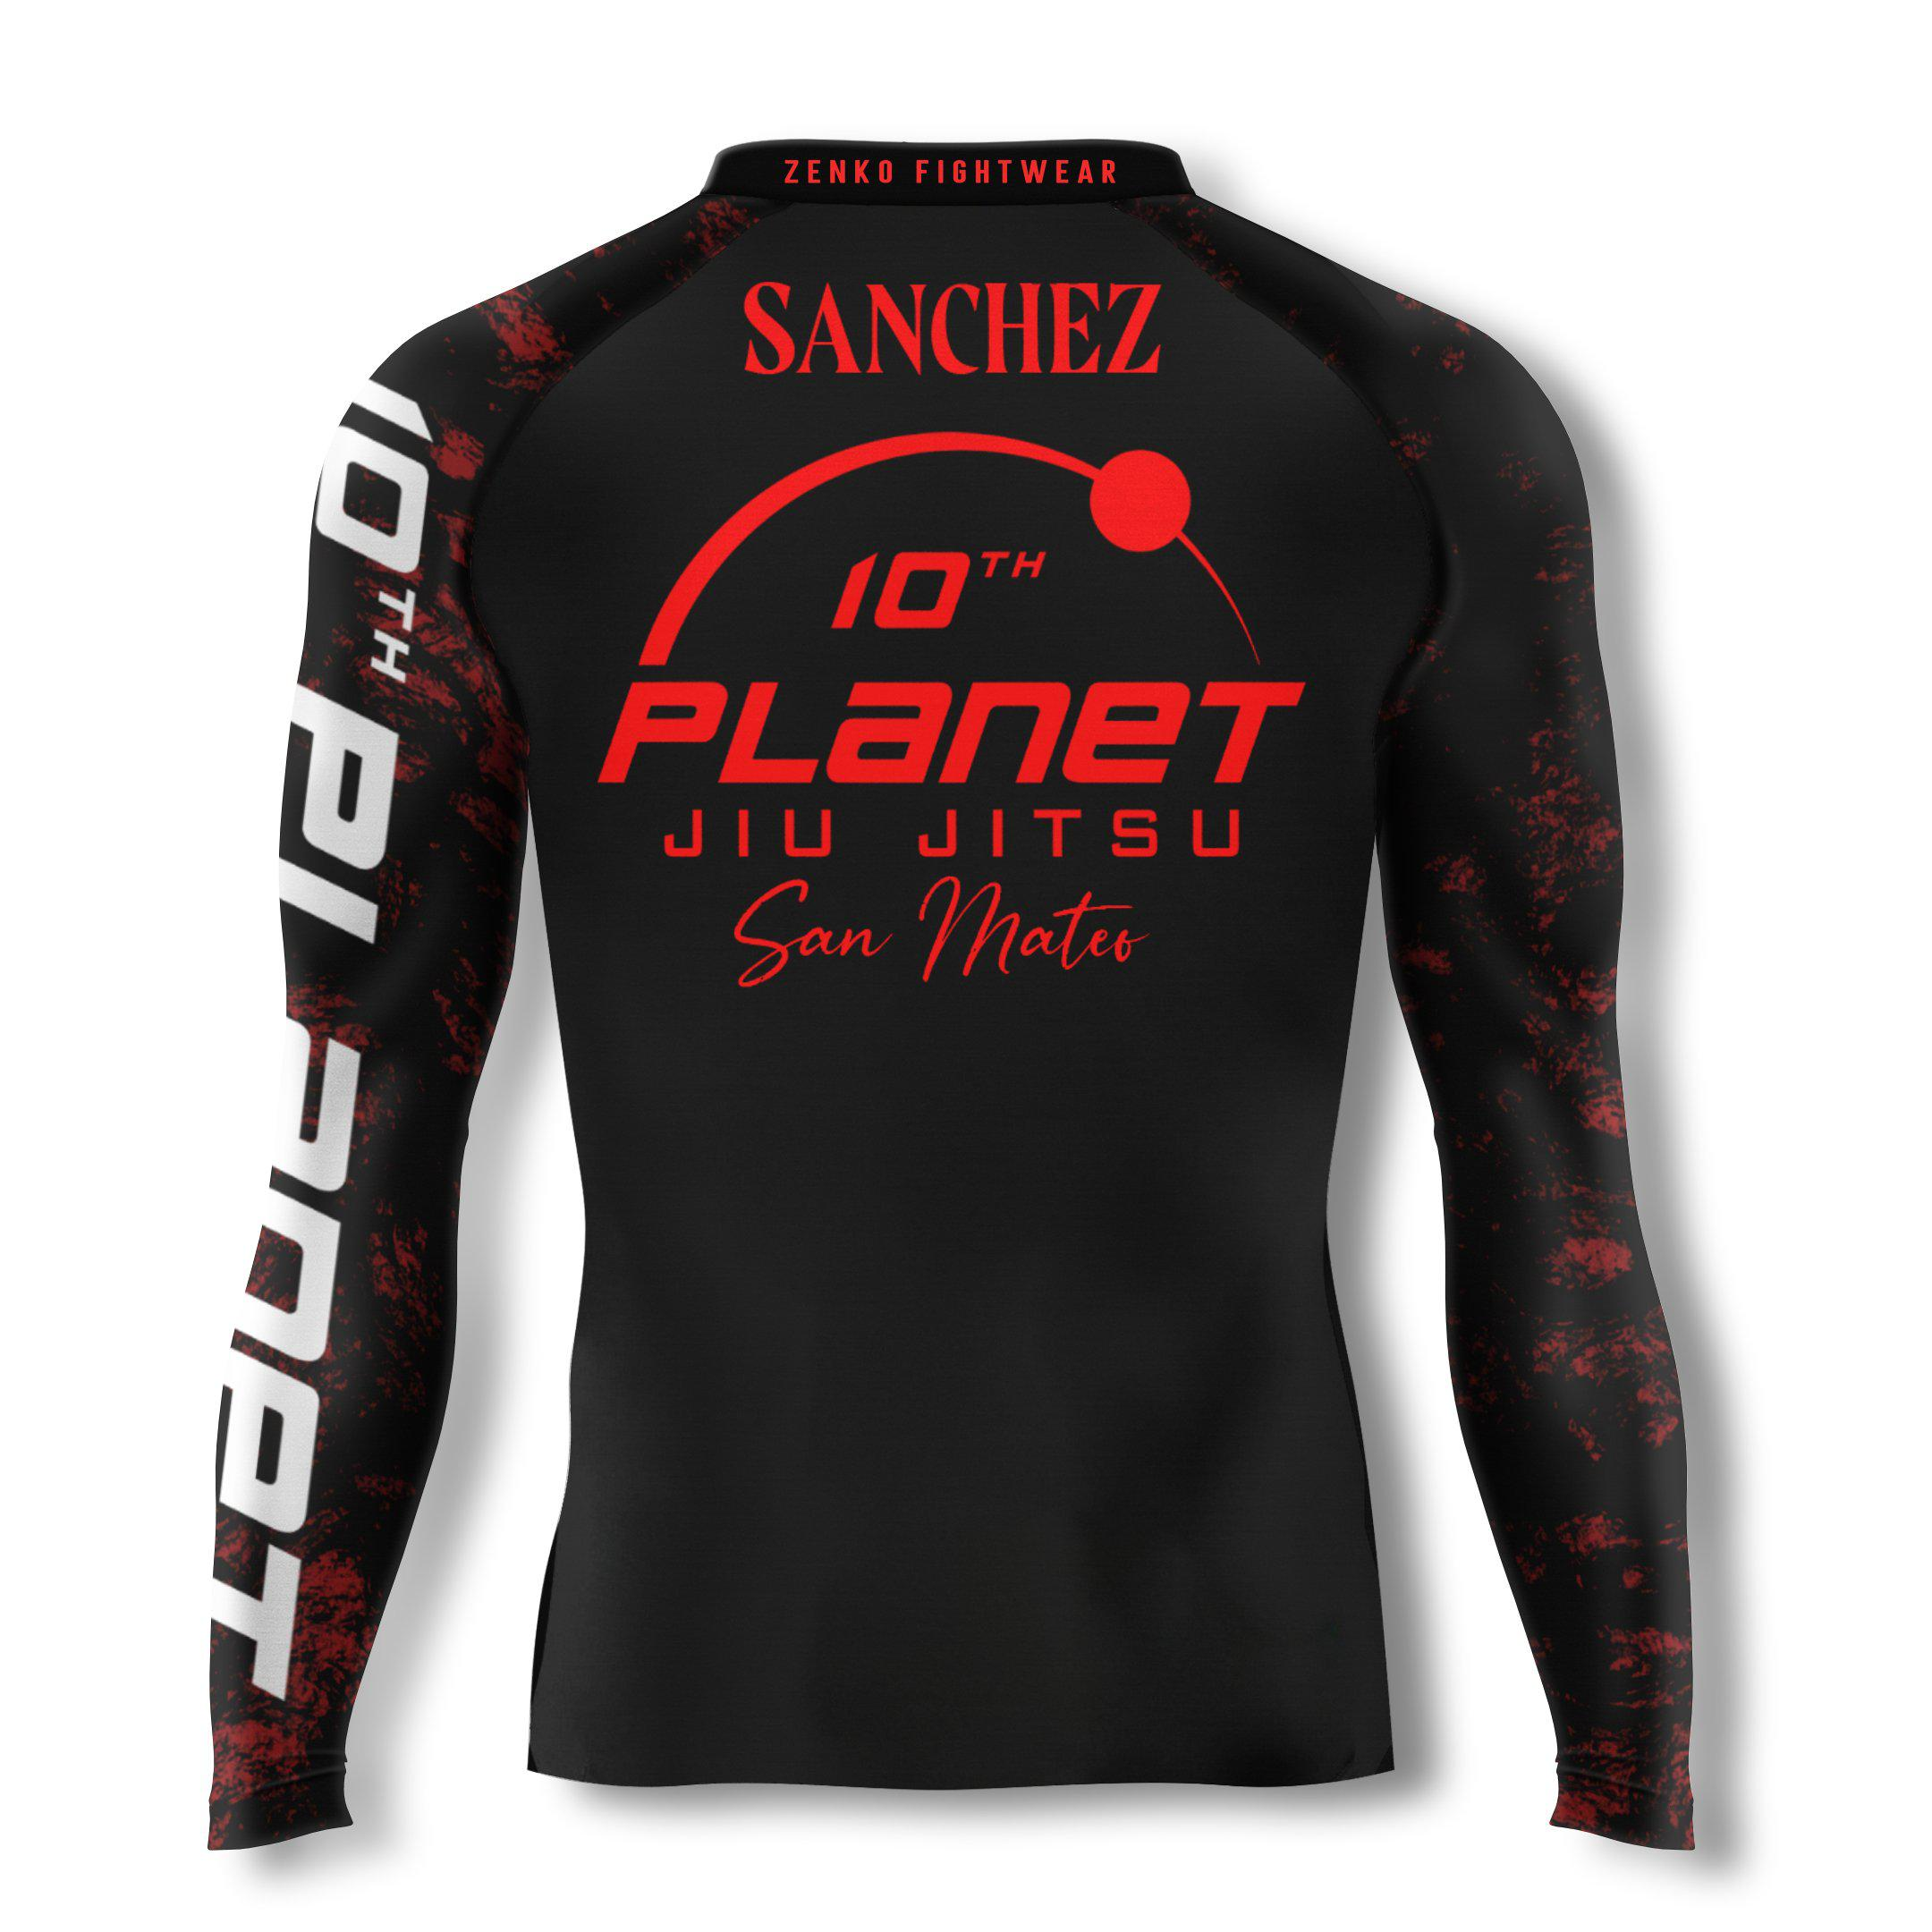 10th Planet San Mateo Afro Samurai Alan Sanchez Rashguard - Zenko Fightwear